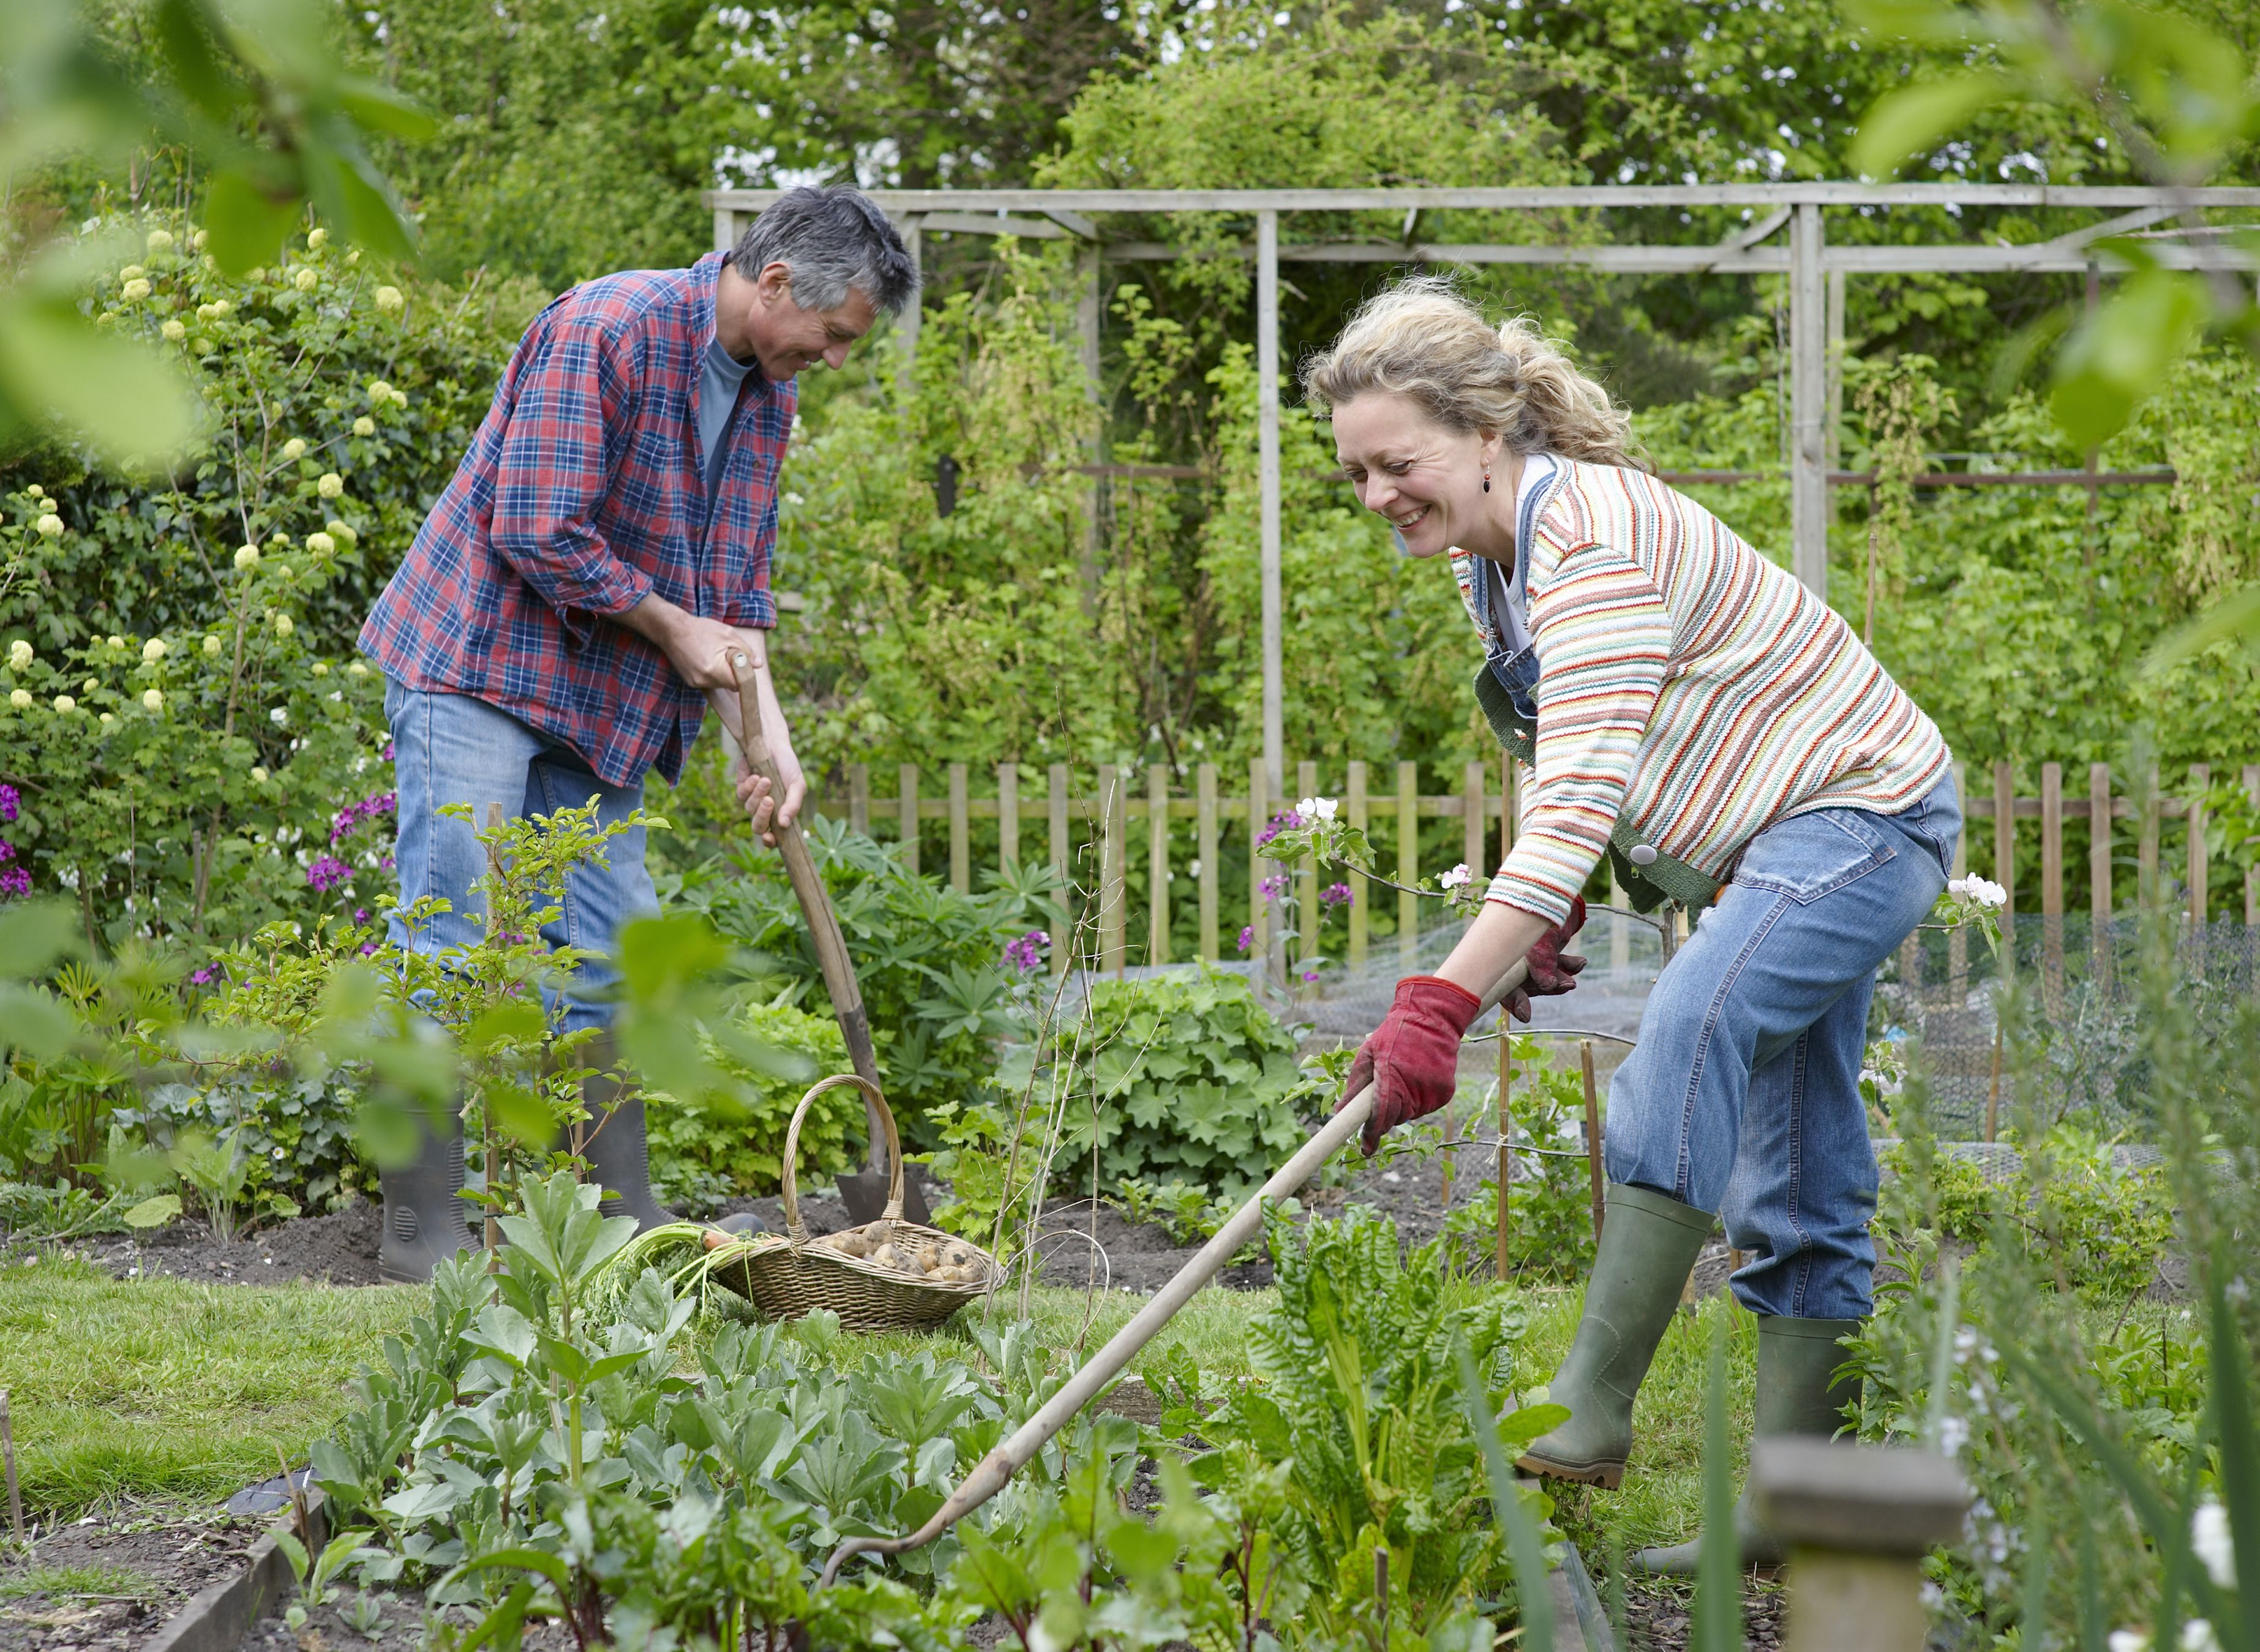 Couple gardening together.